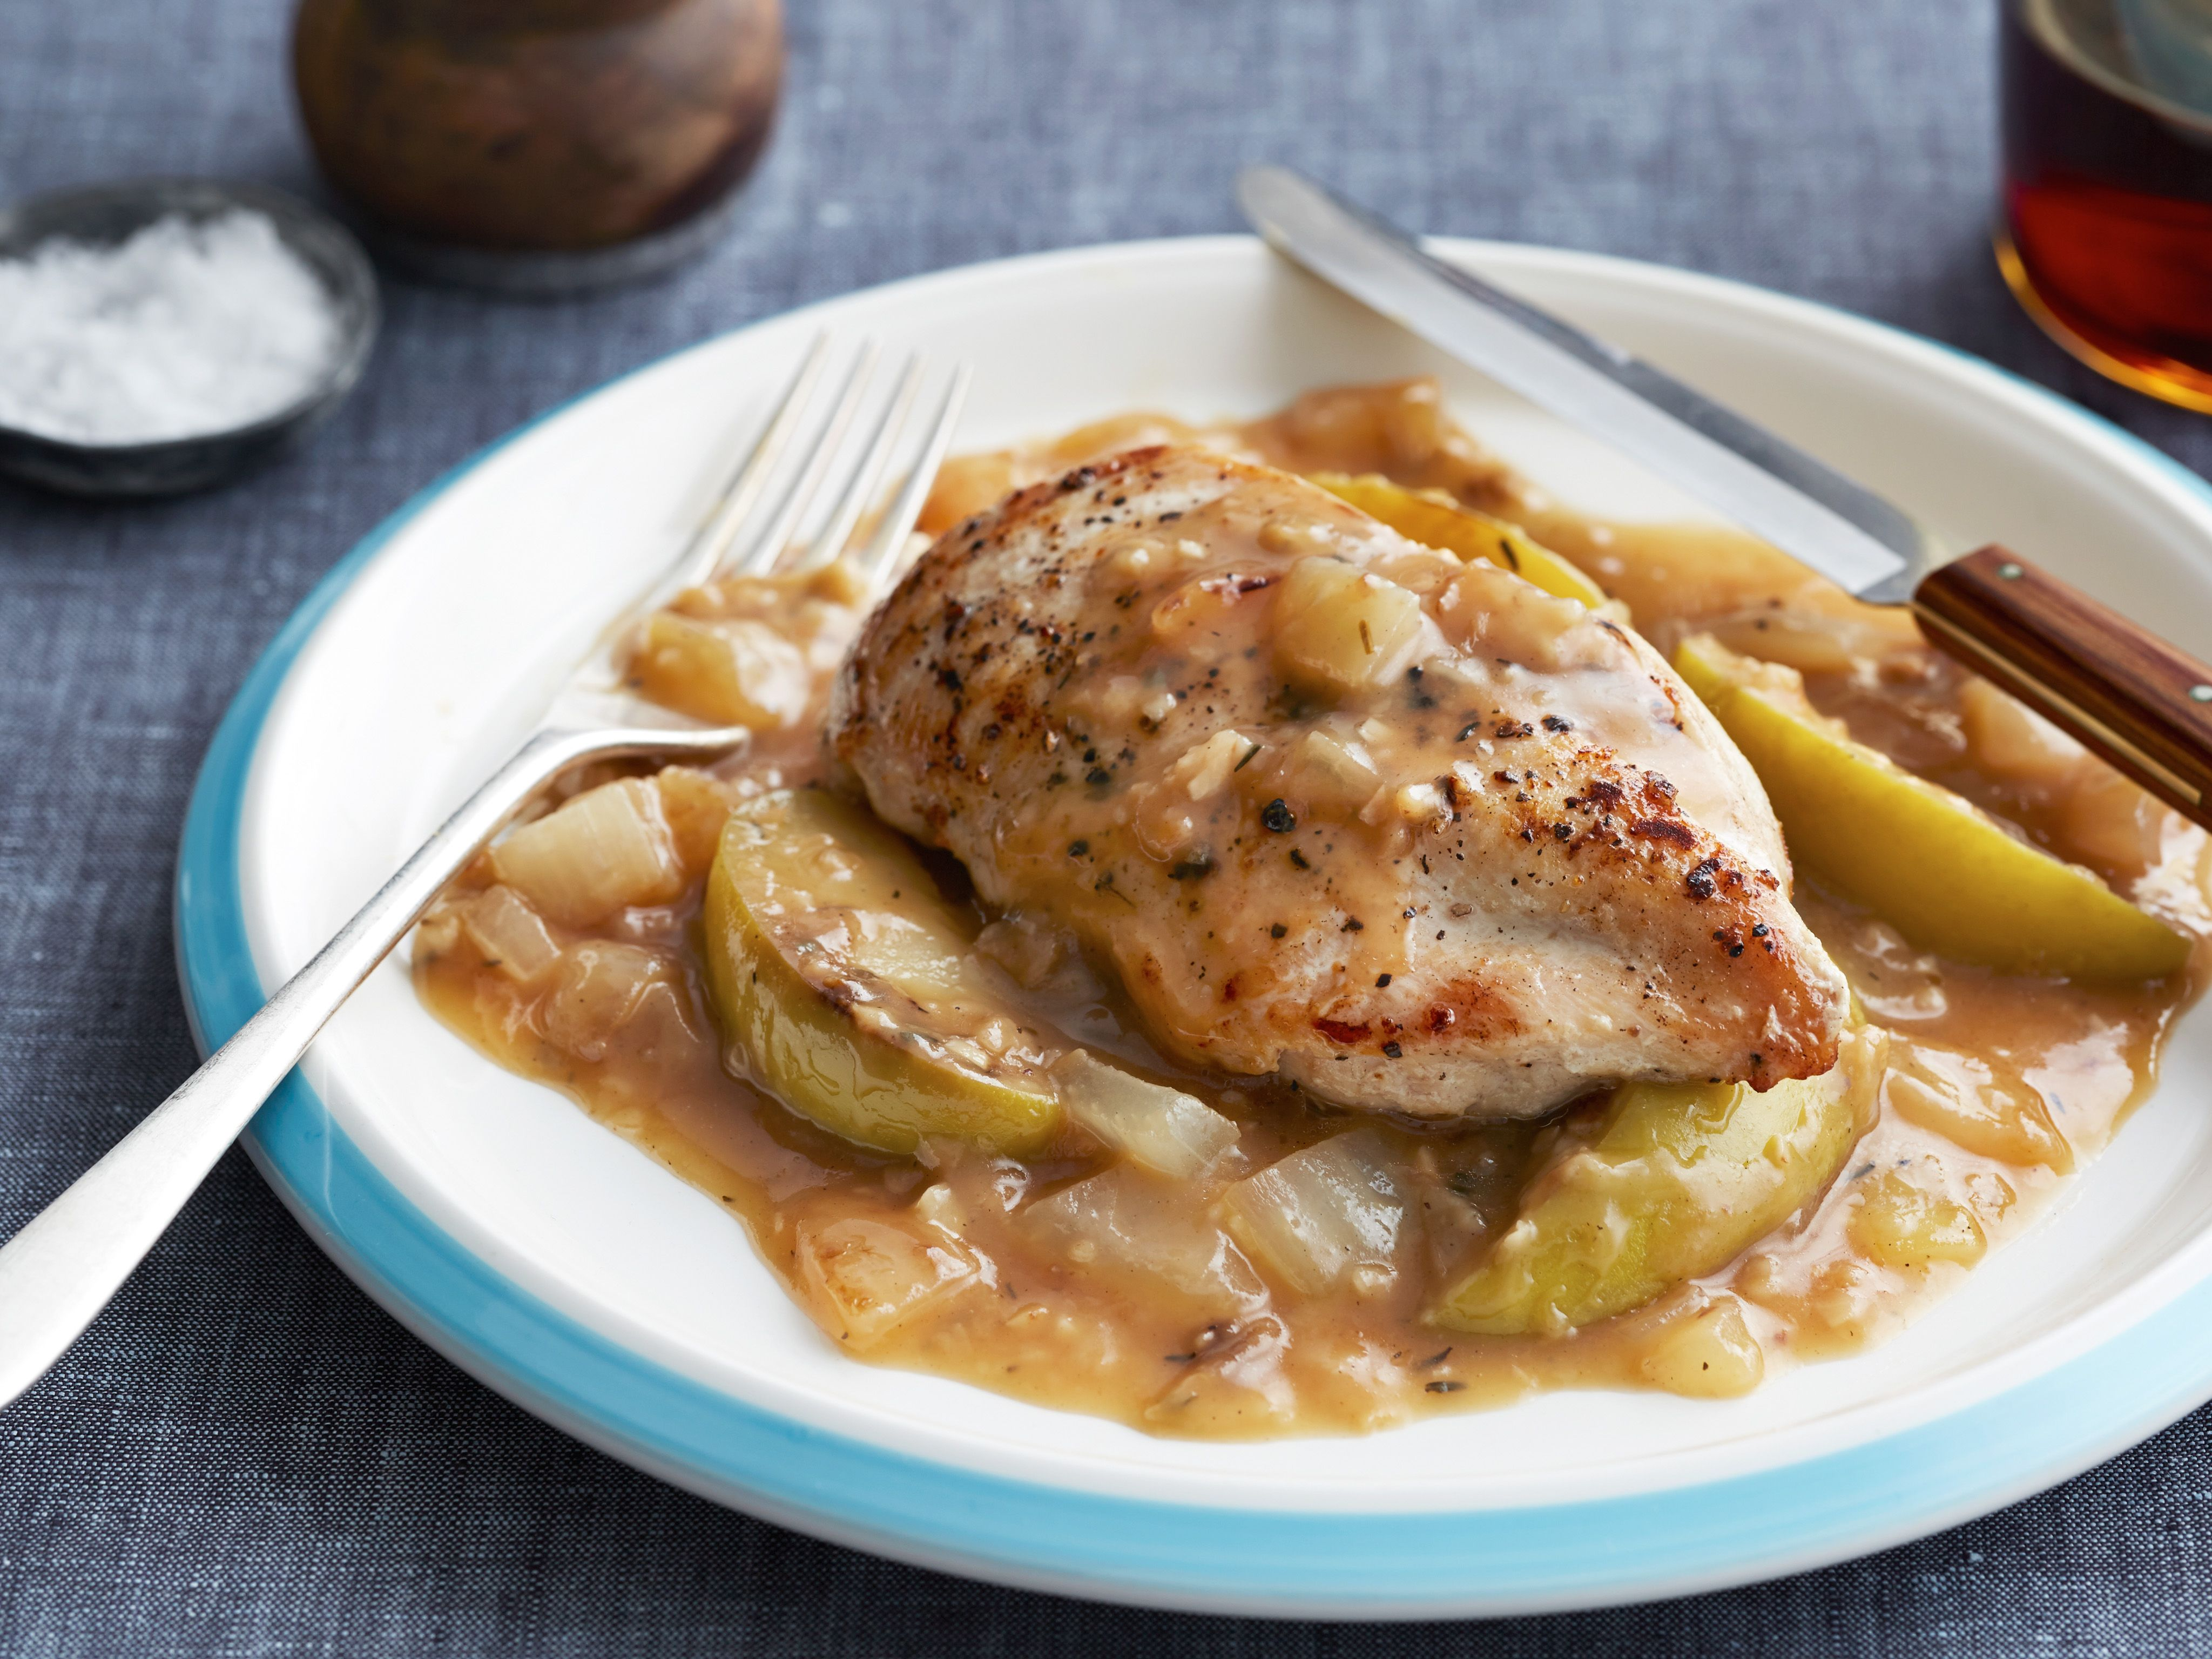 Apple cider chicken recipe sunny anderson apple cider and apples apple cider chicken forumfinder Images